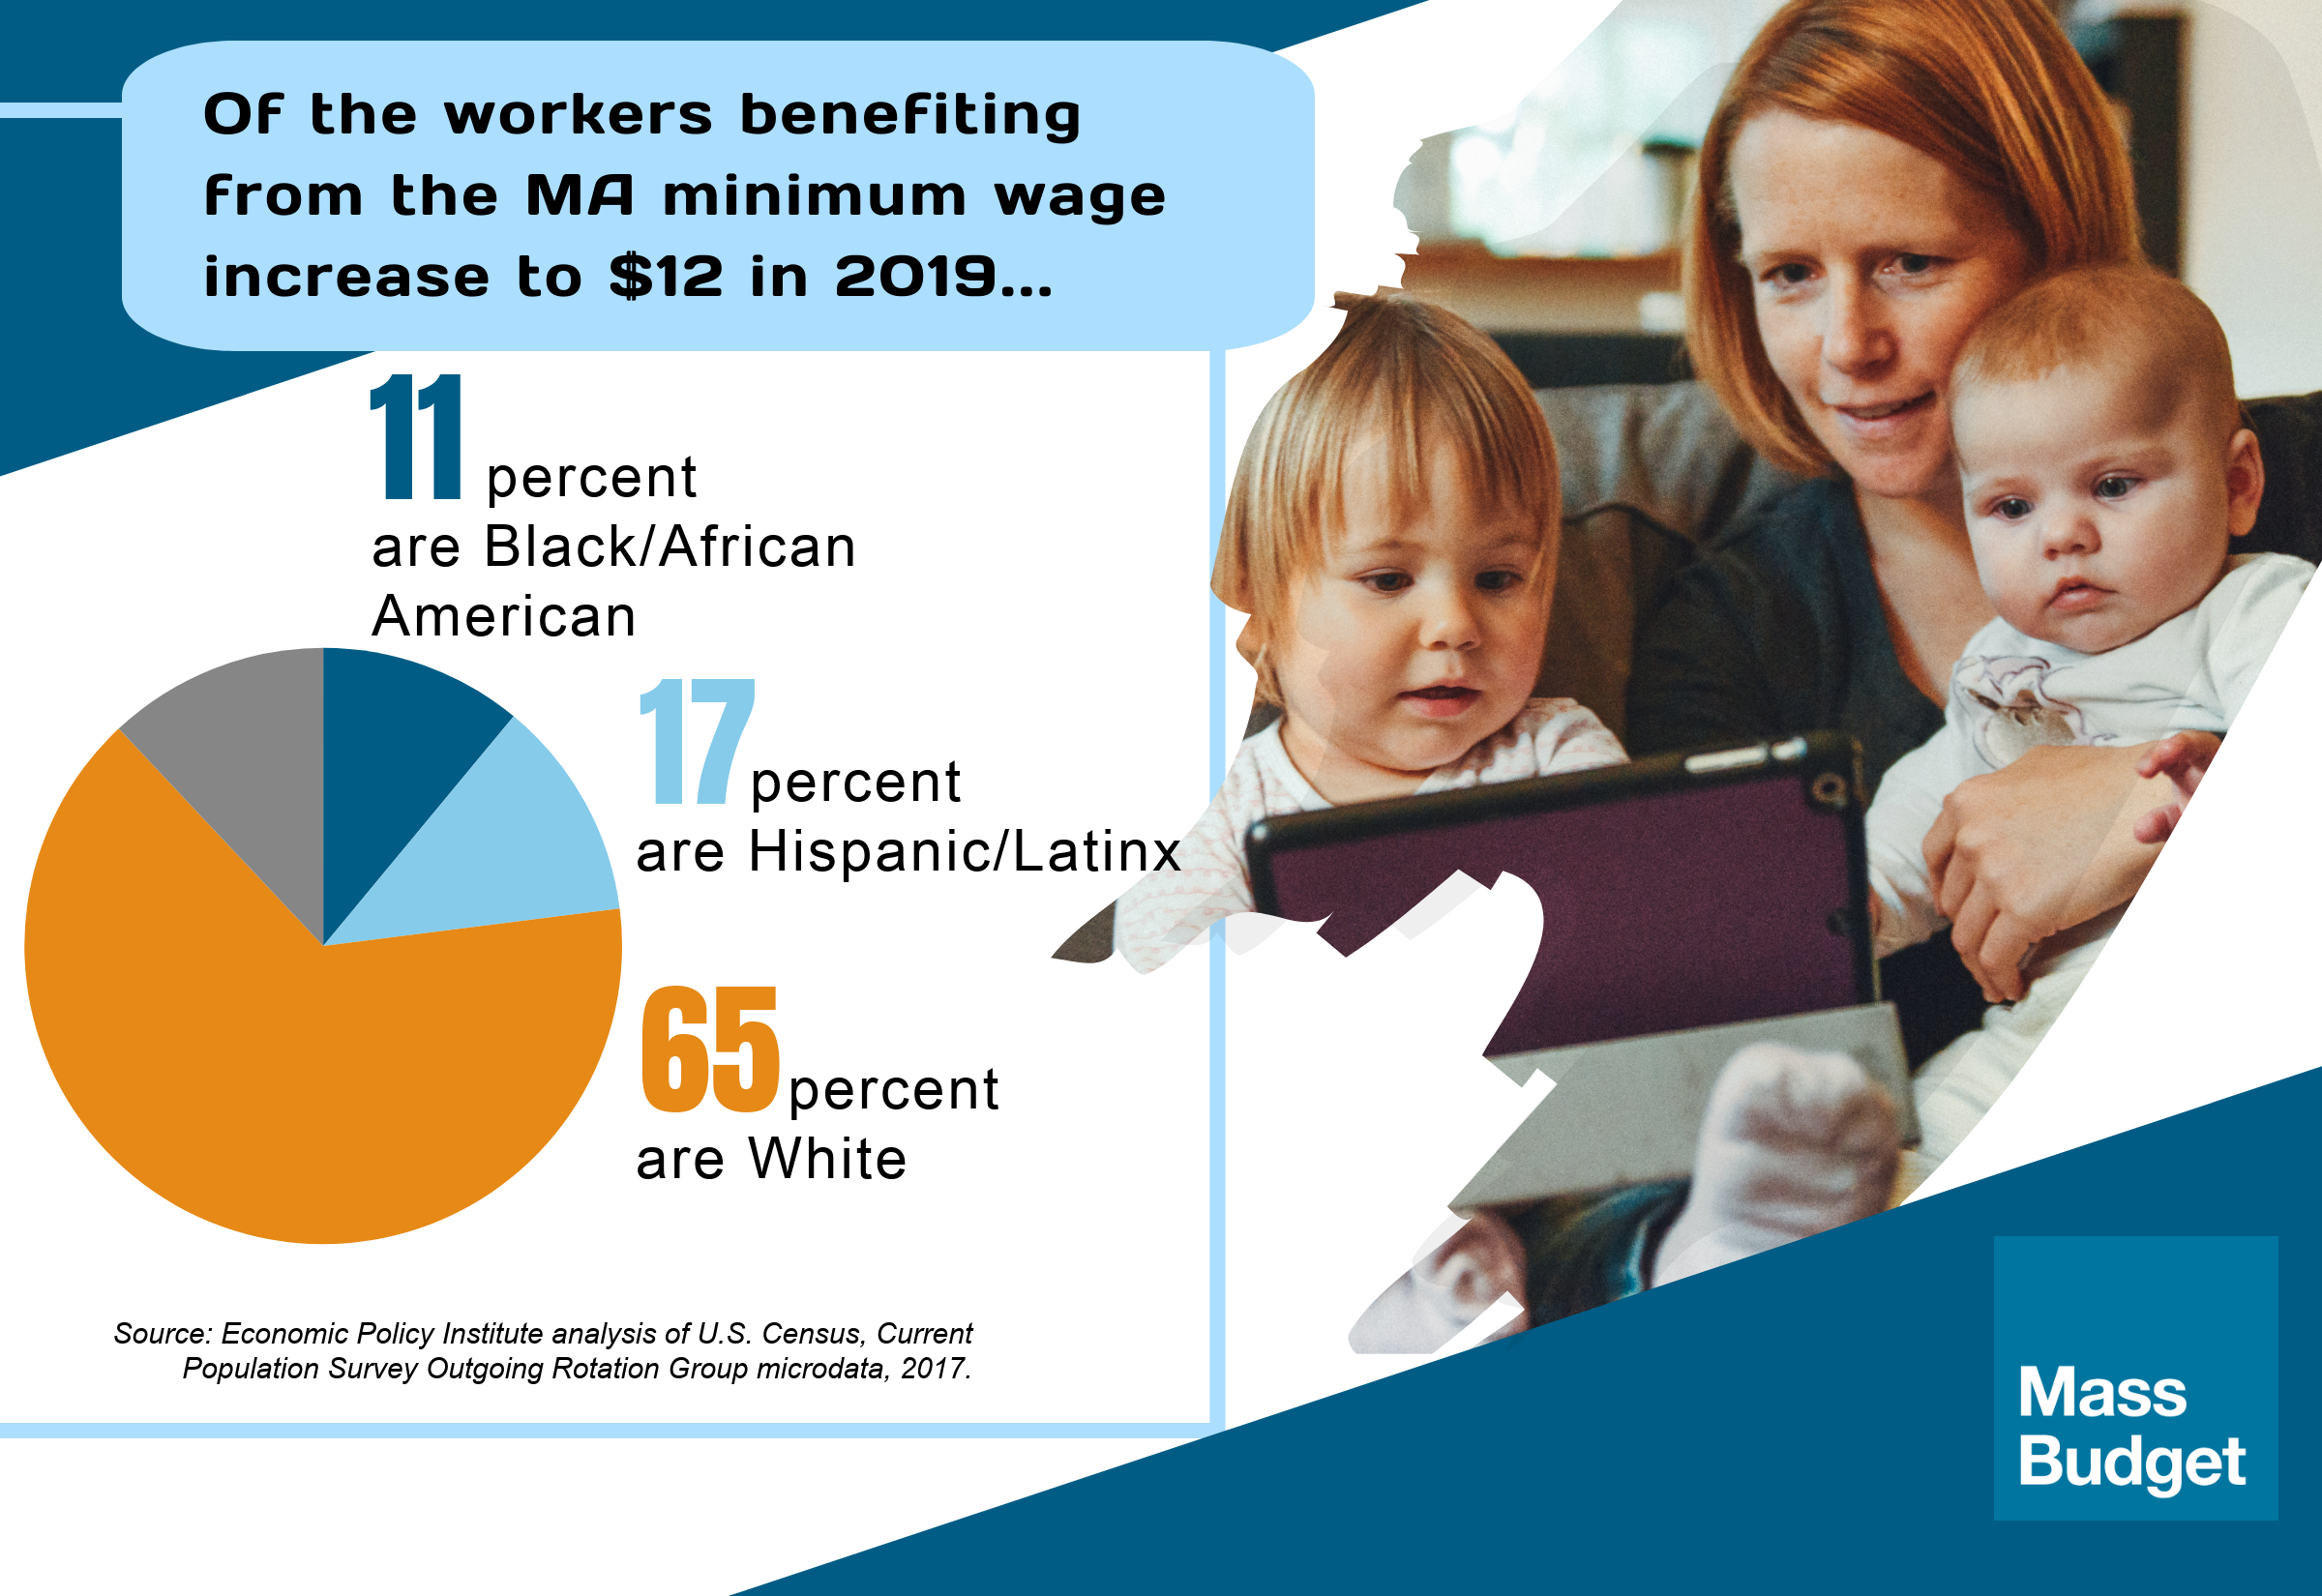 Of workers benefiting from increase to $12: 11% are Black/African American; 17% are Hispanic/Latinx; 65% are White